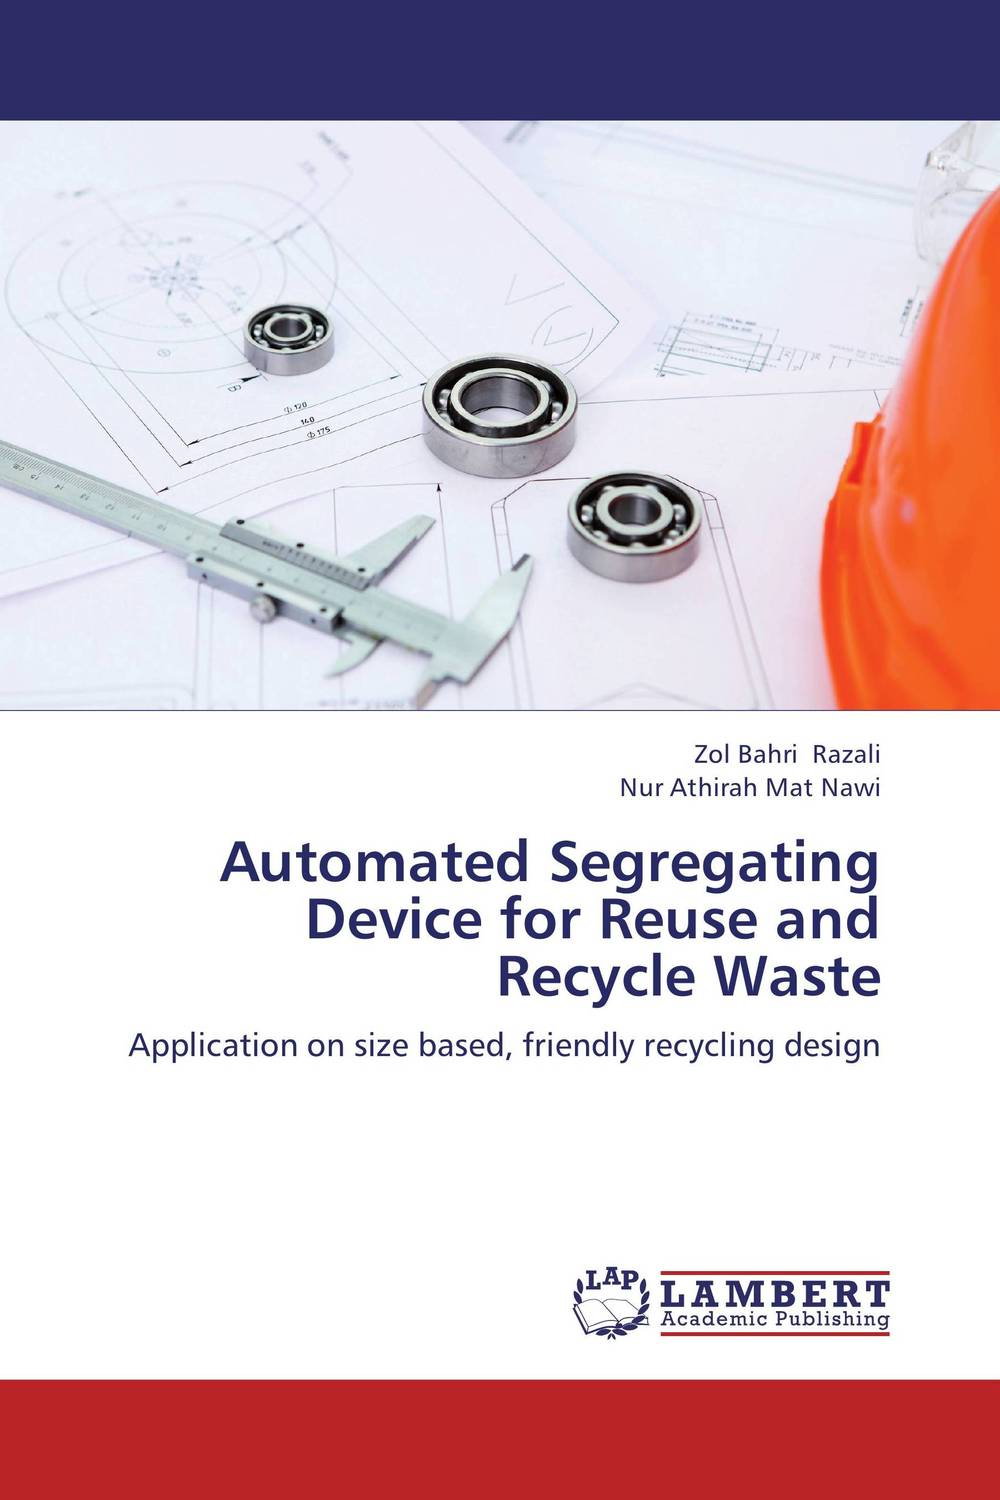 Automated Segregating Device for Reuse and Recycle Waste